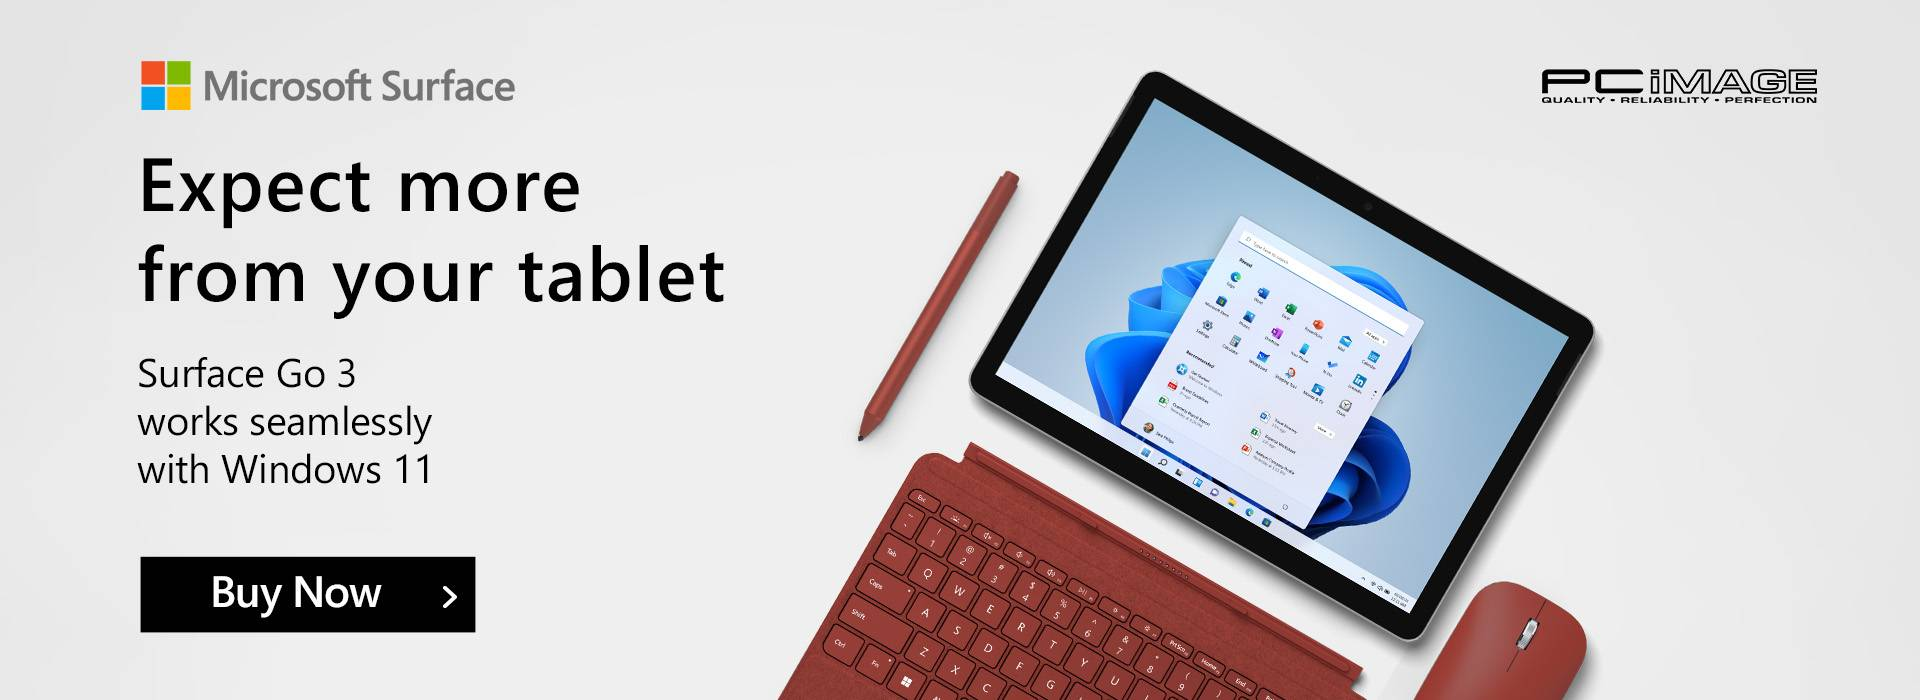 Surface Go 3 Buy Now